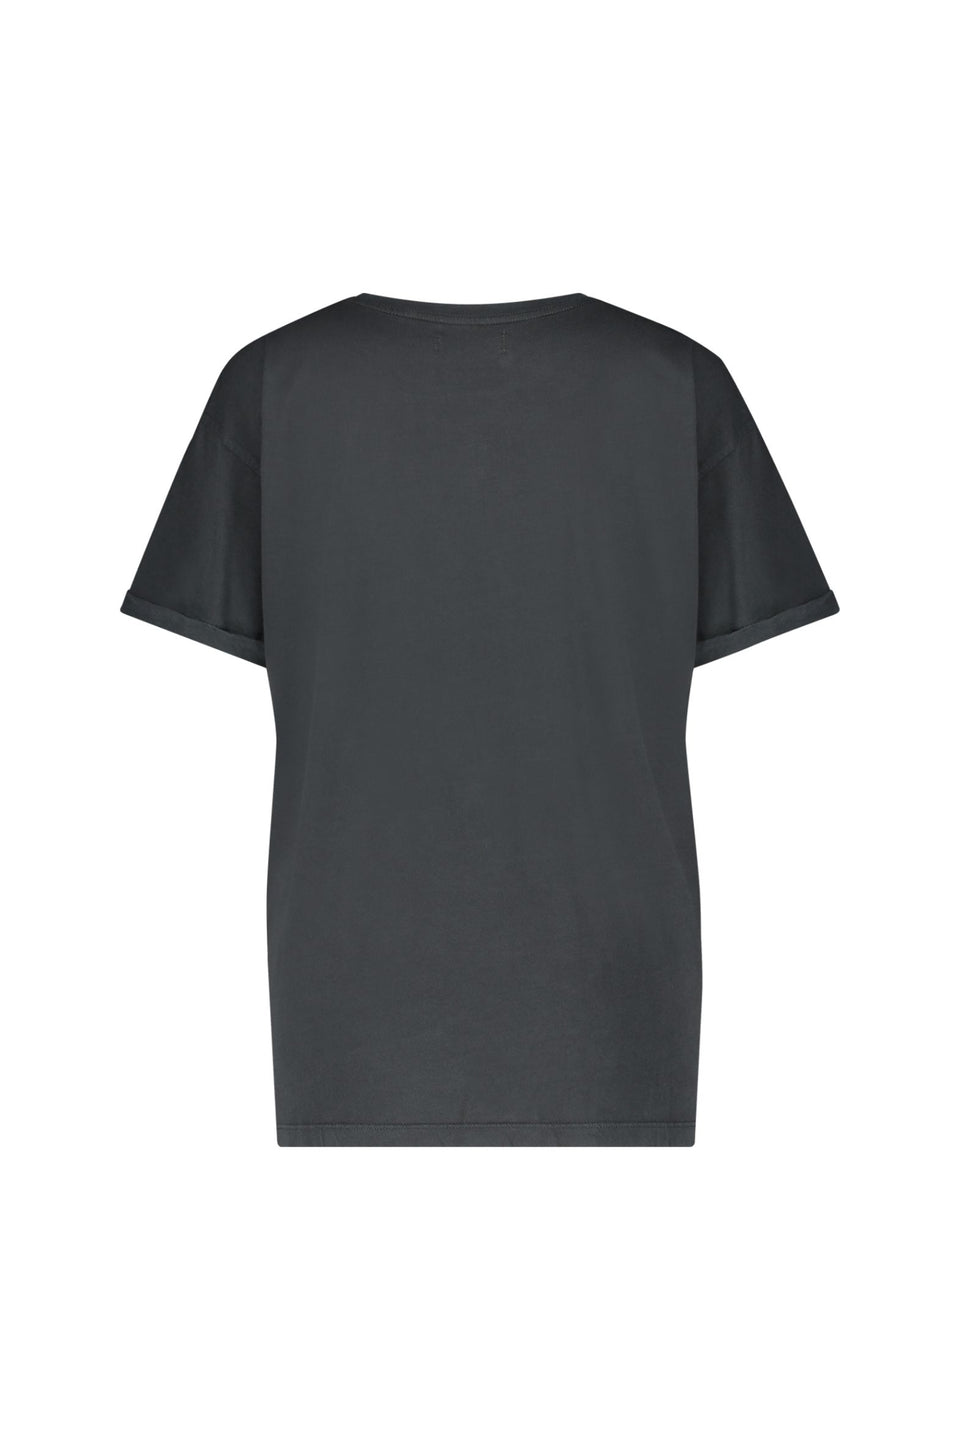 Talyn T-Shirt - Anthracite